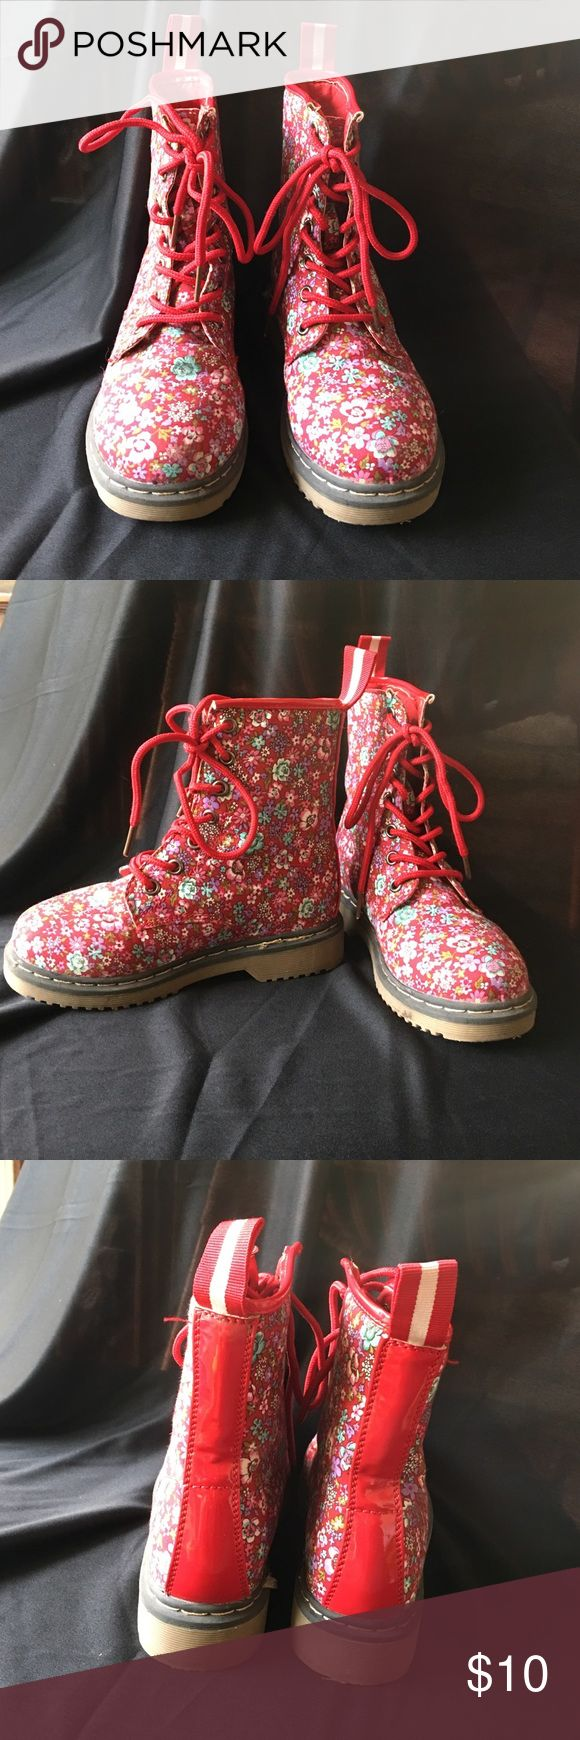 Red floral combat boots Red floral print combat boots.  Lace up Link Shoes Boots